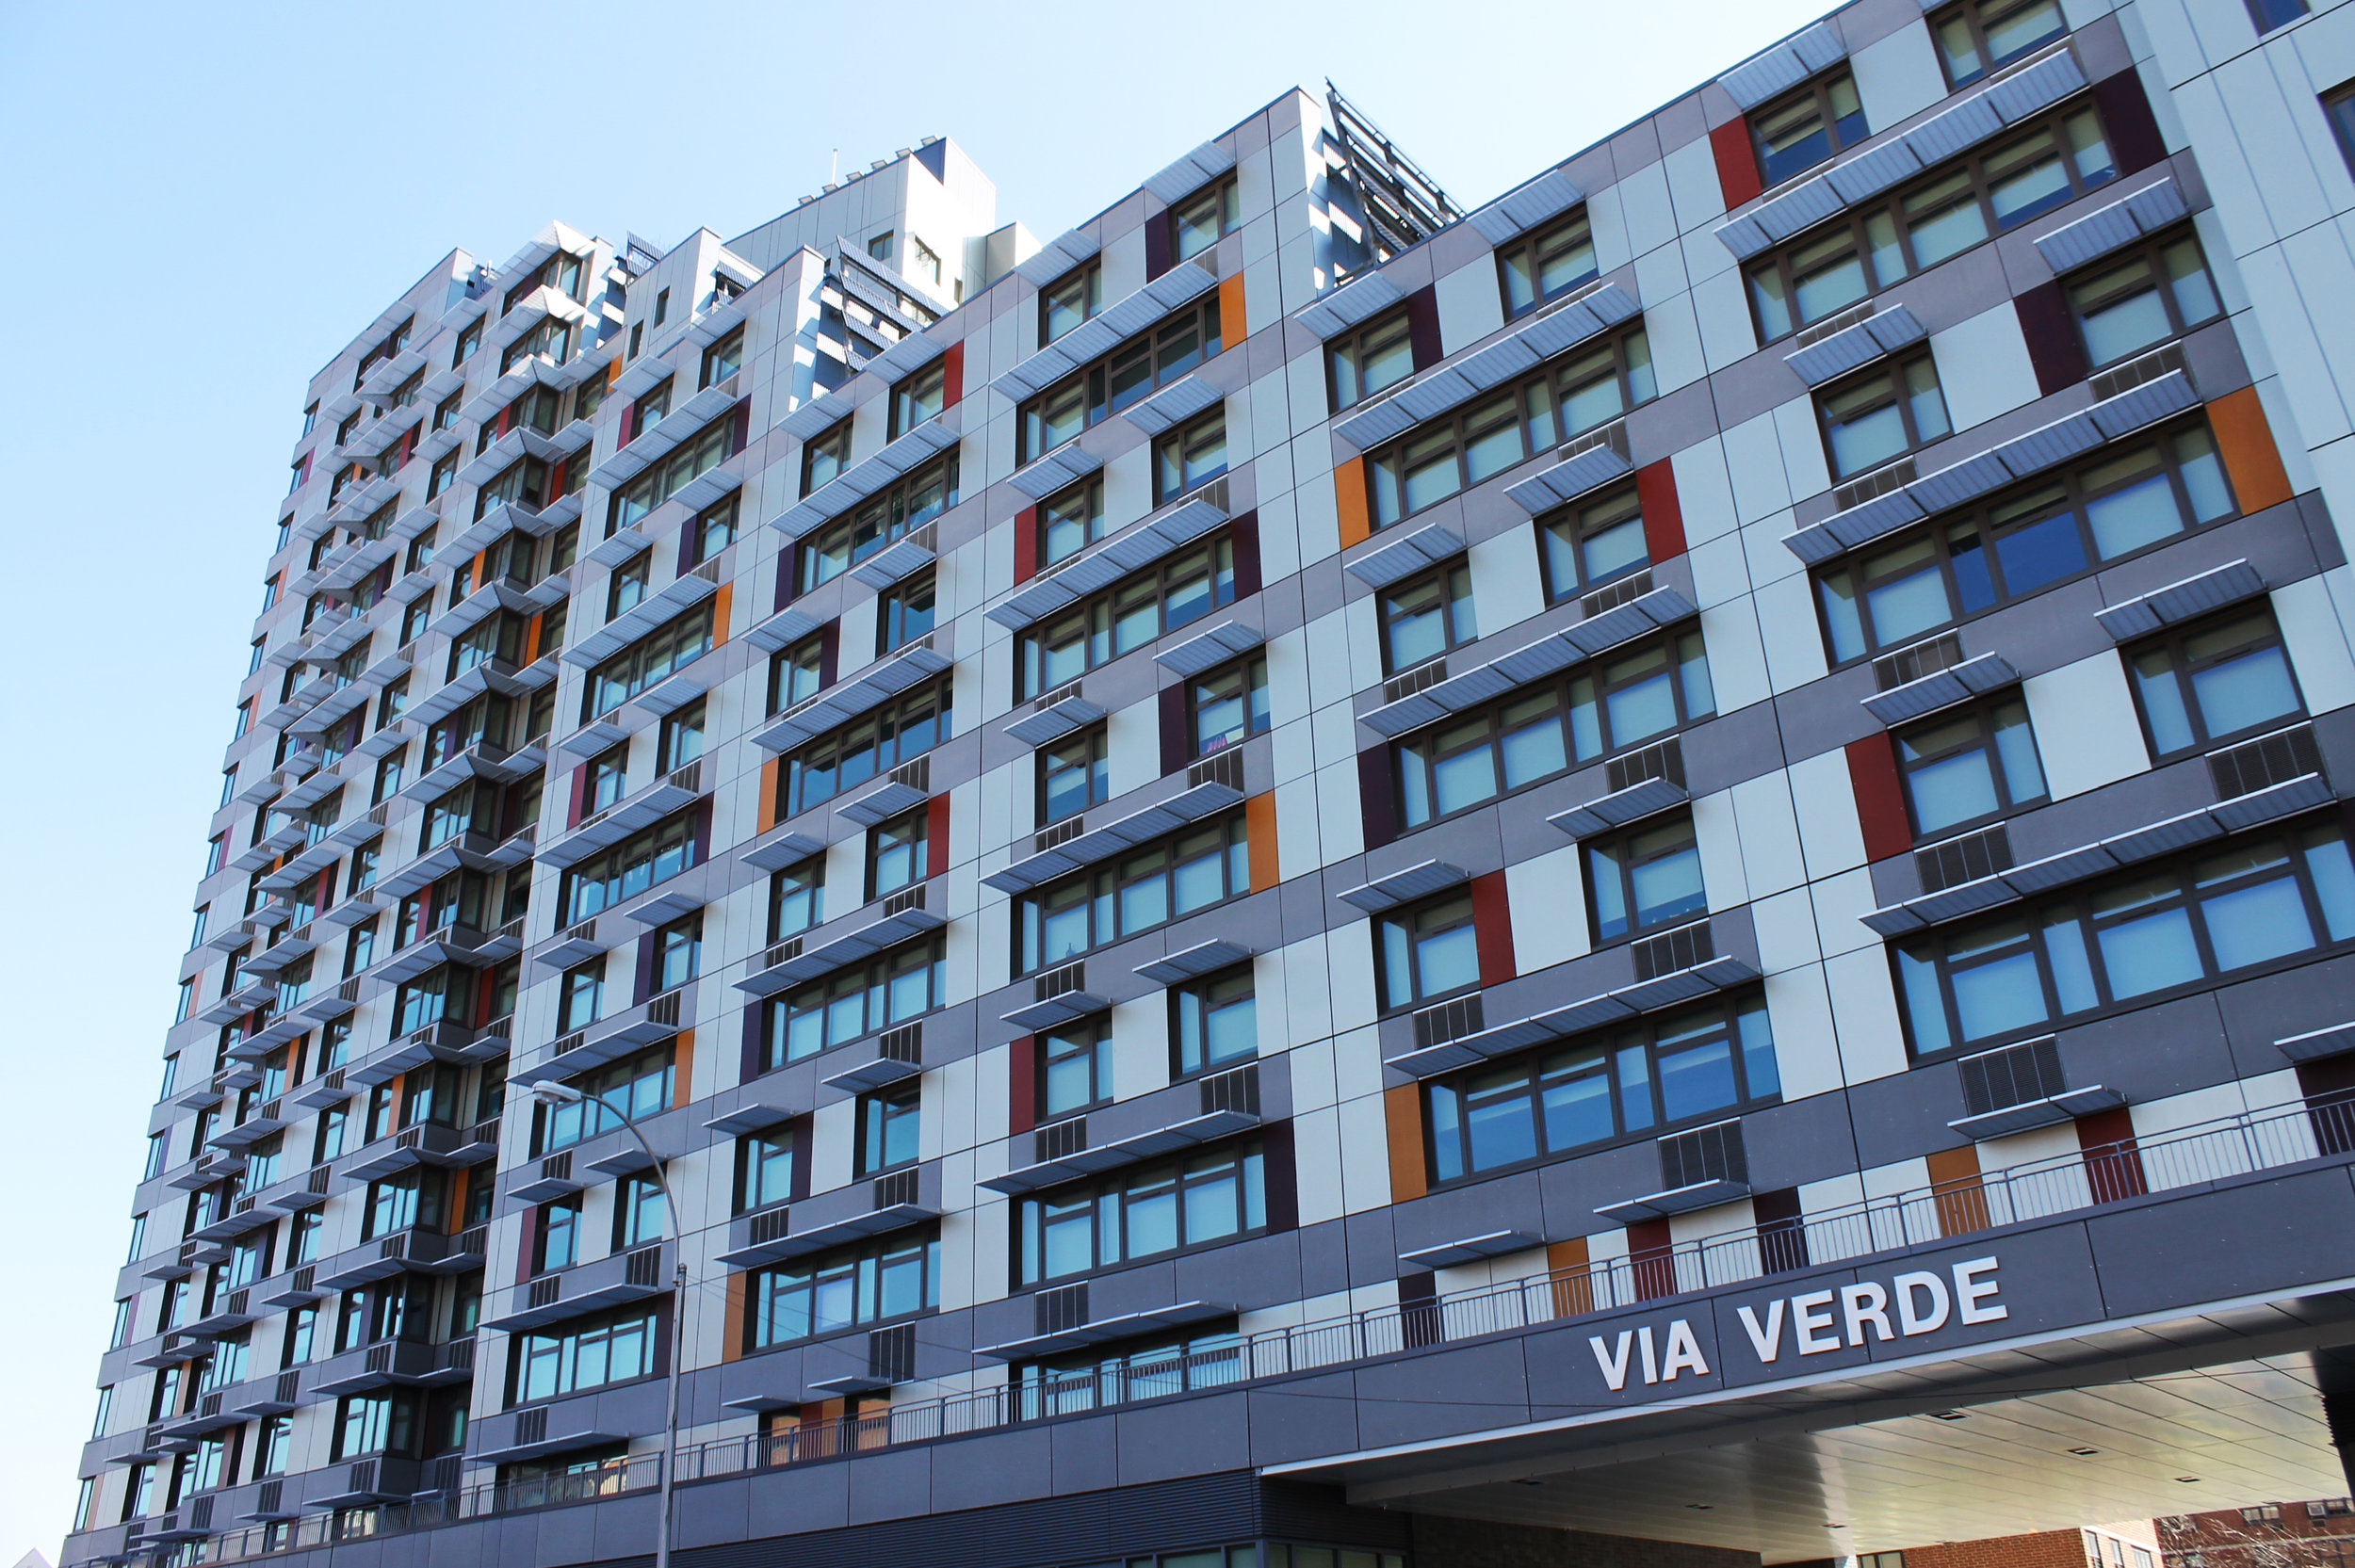 Via Verde Housing Complex, Bronx, NY - Designed by Grimshaw Architects and Dattner Architects (Photo by Jules Antonio)